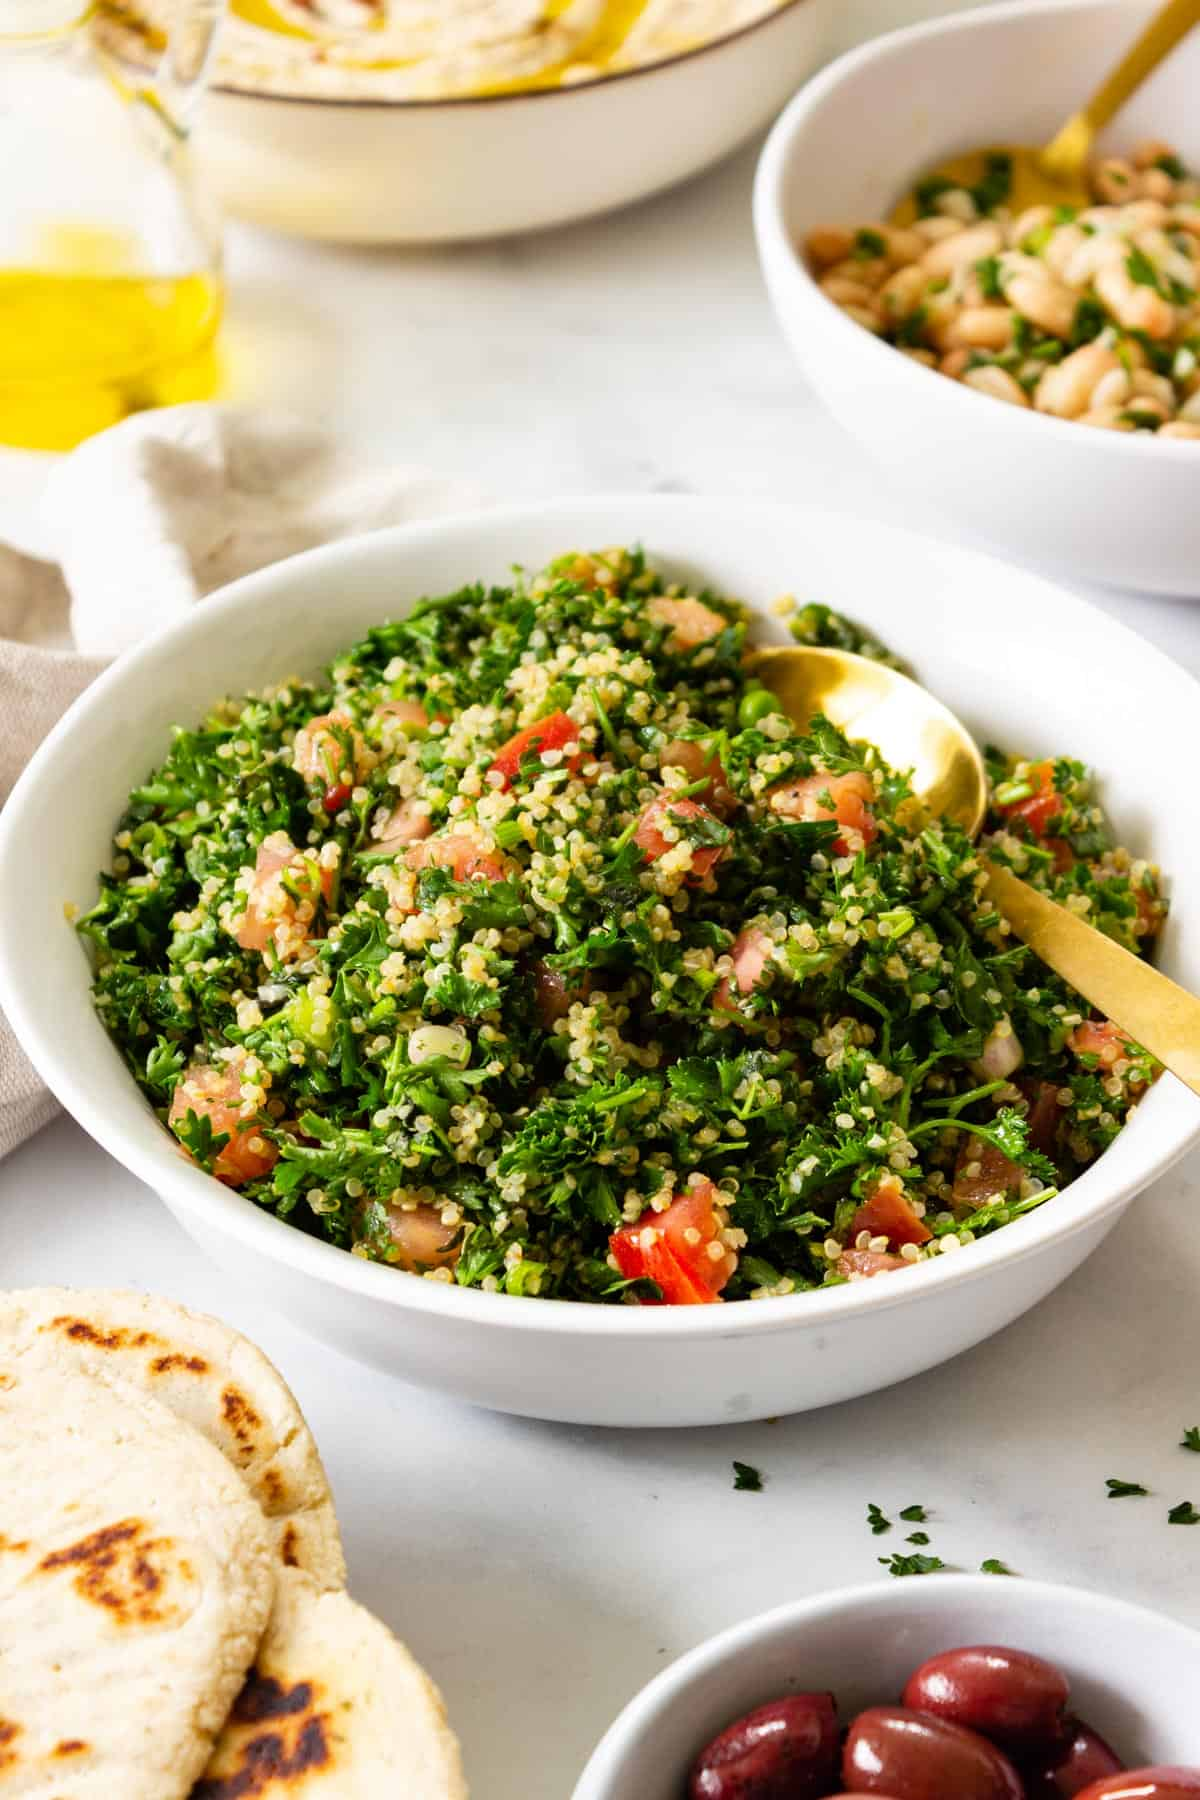 A white serving bowl of tabbouleh sits on a table with other side dishes.